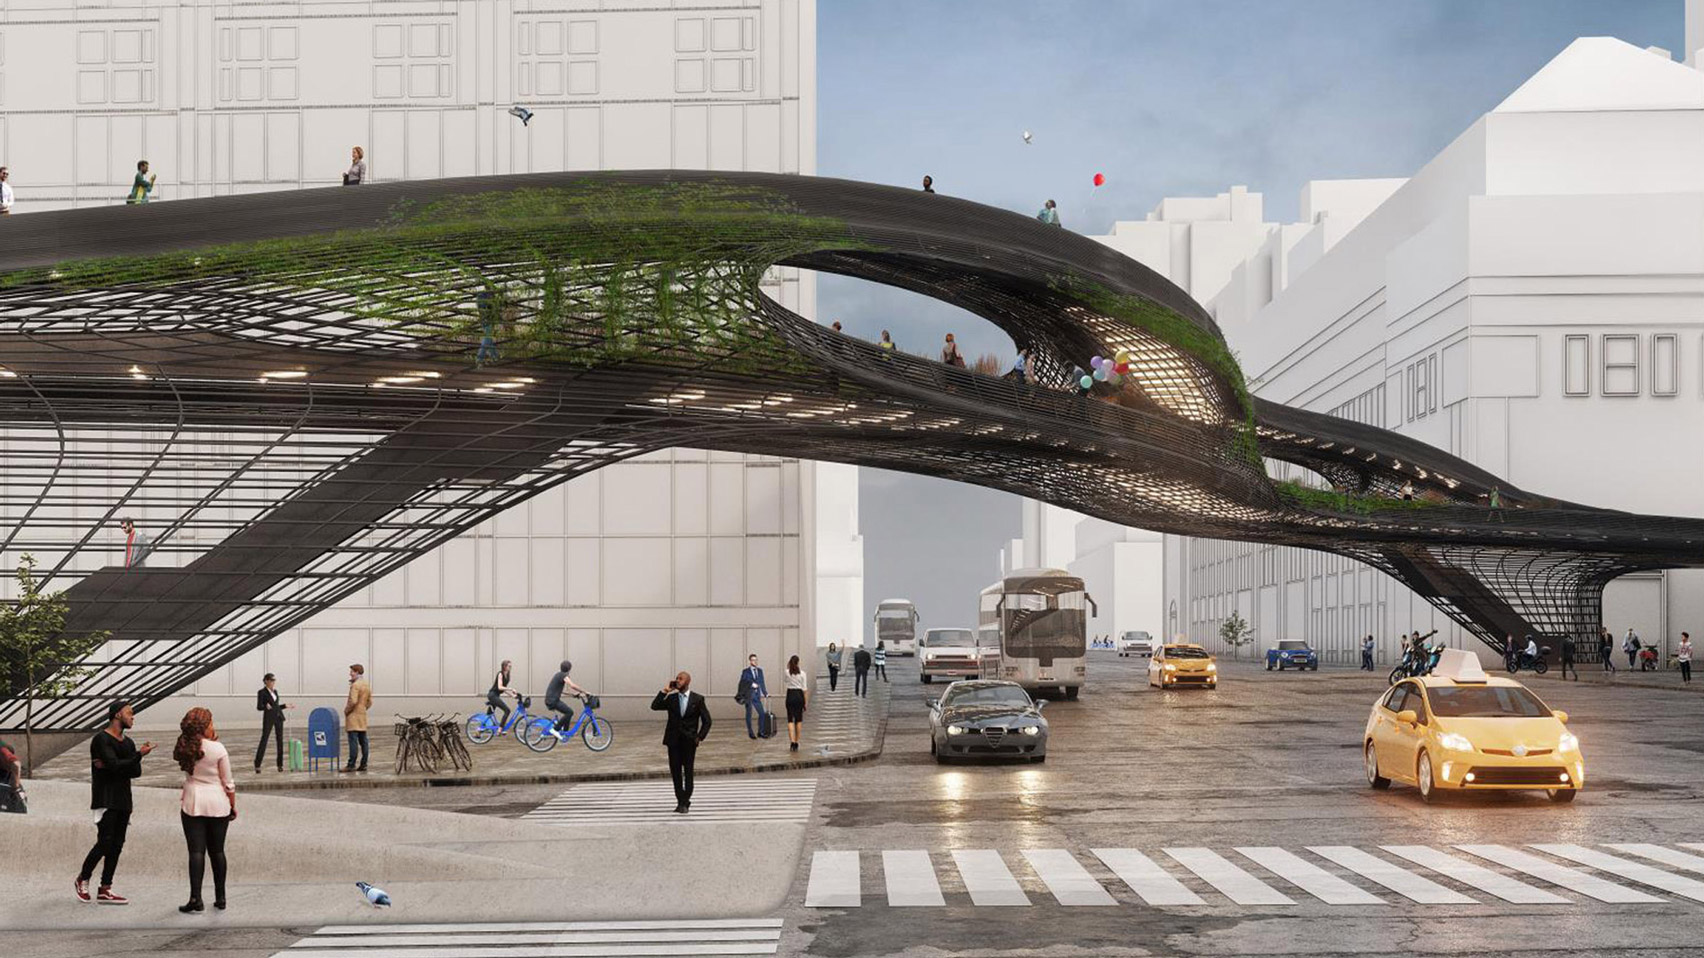 Rendering of a bridge over a street